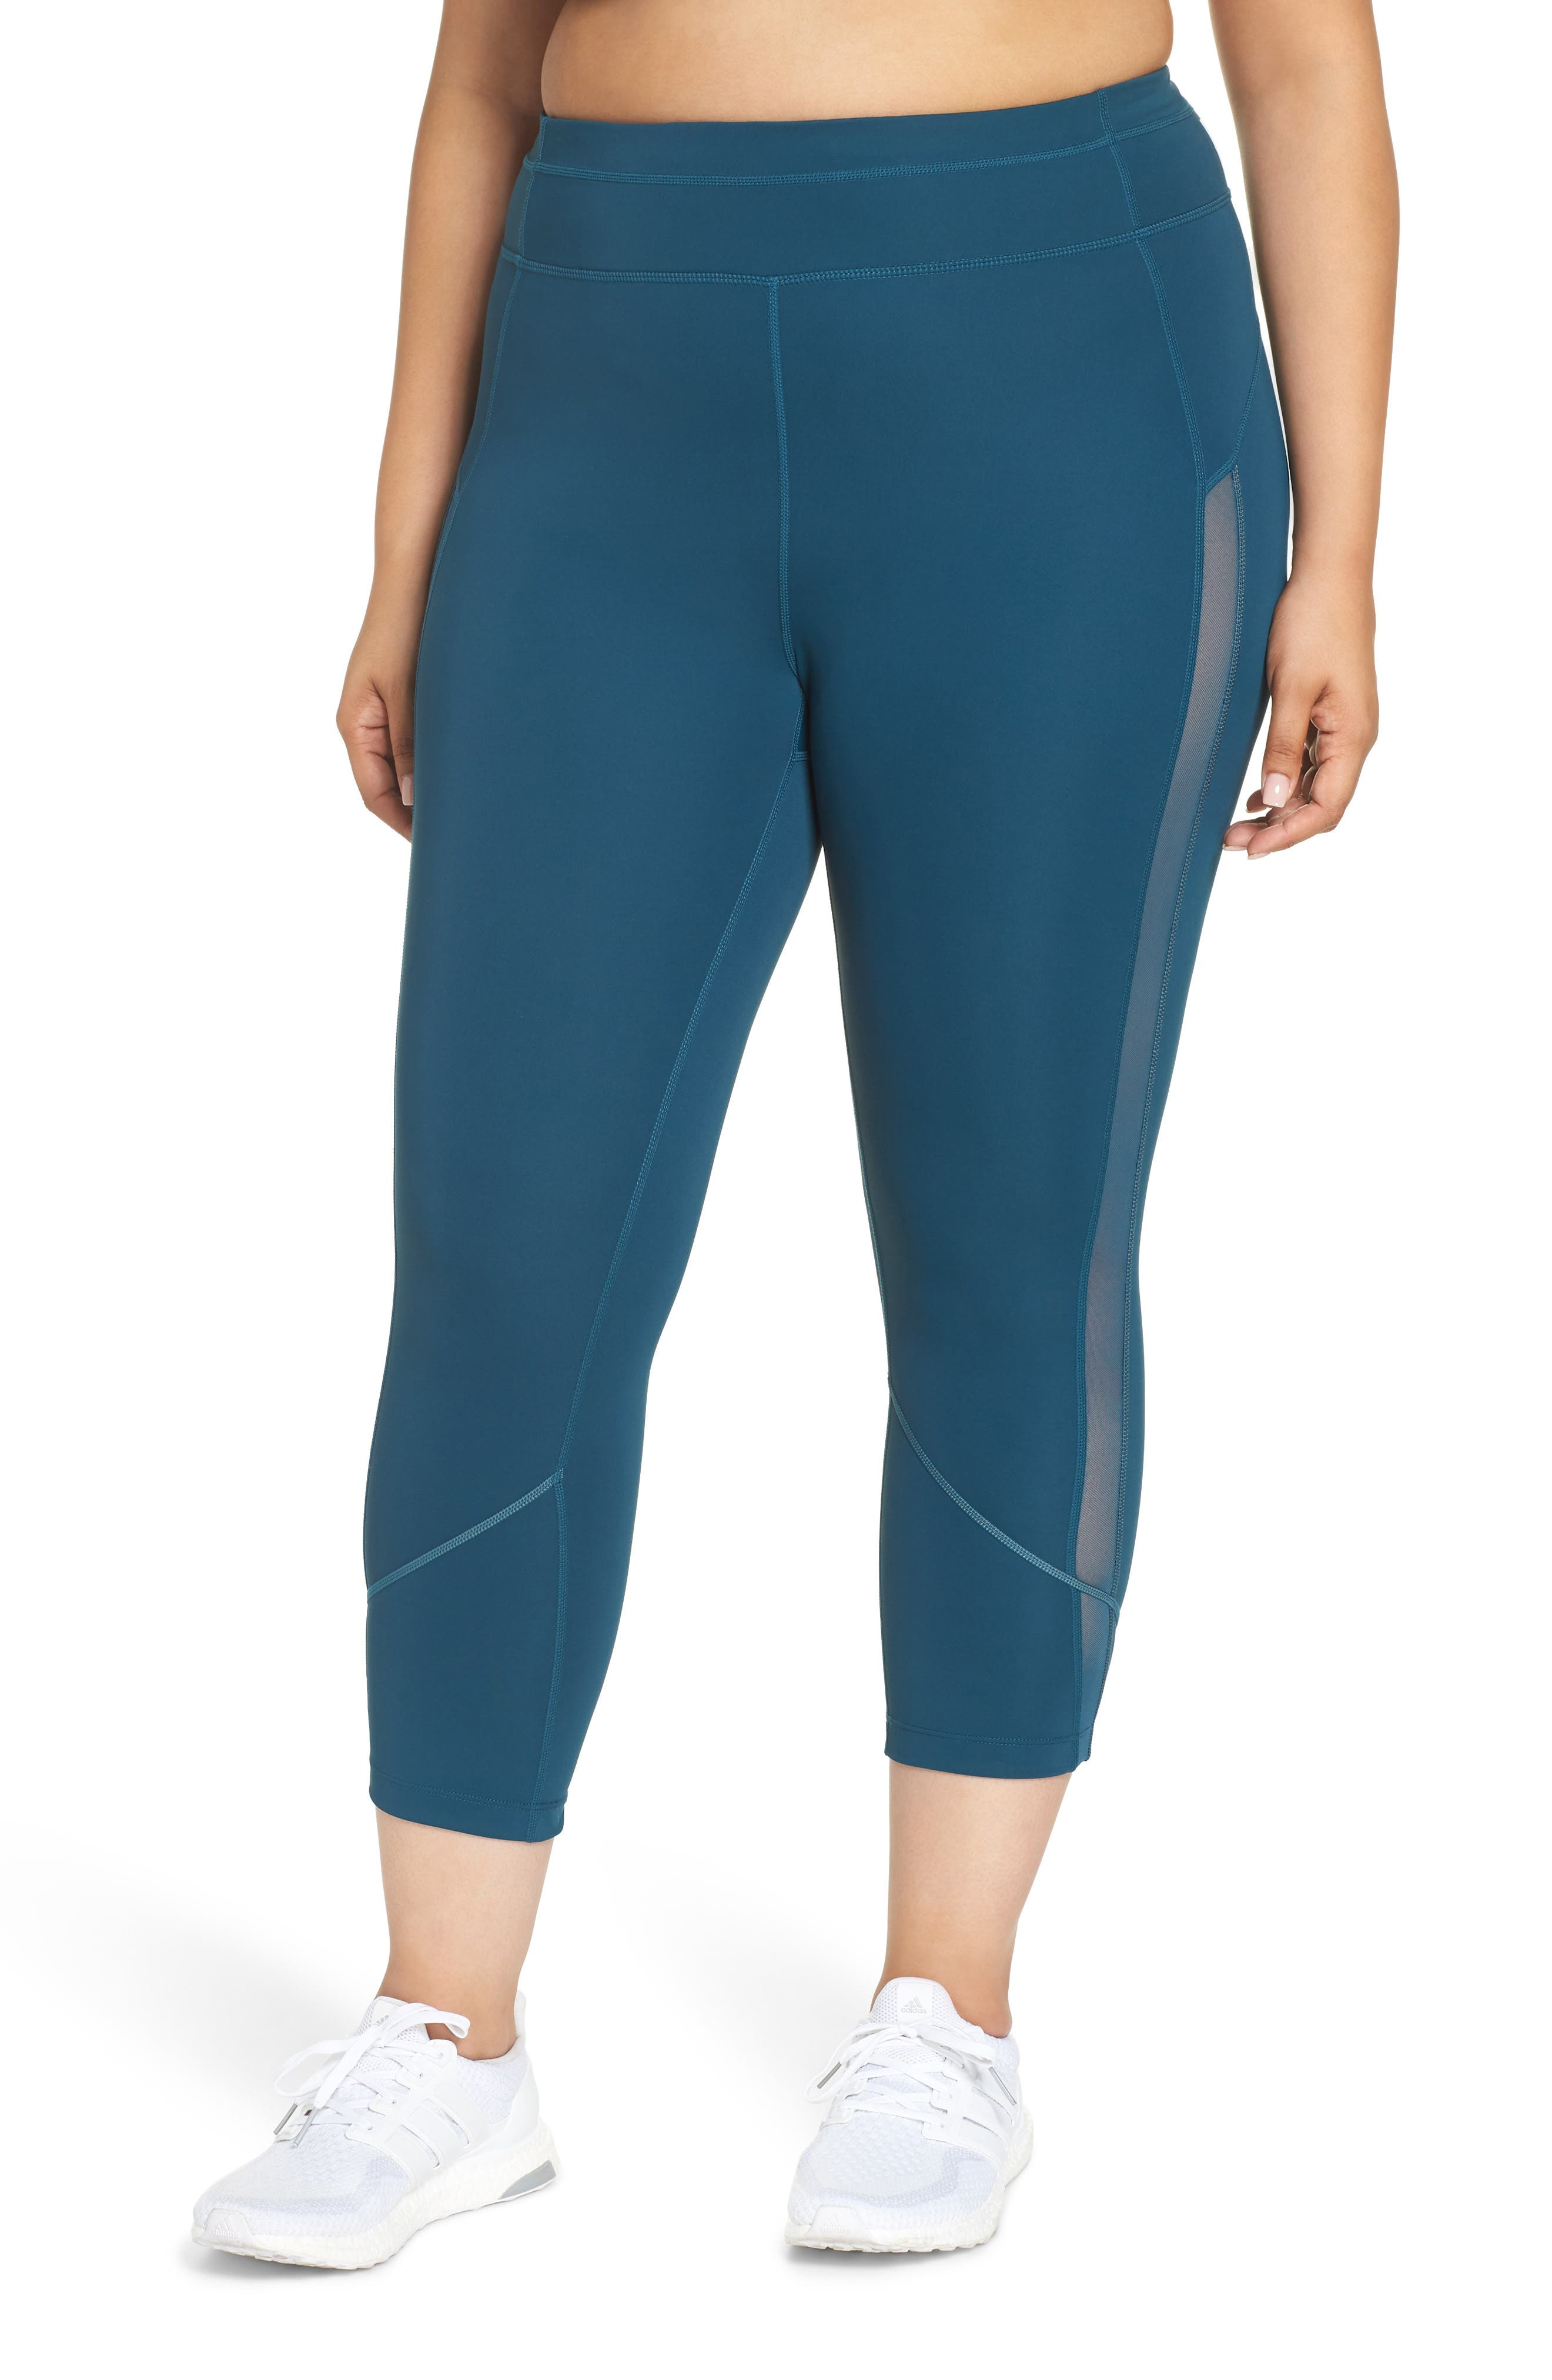 ZELLA,                             All In High Rise Crop Tights,                             Main thumbnail 1, color,                             449